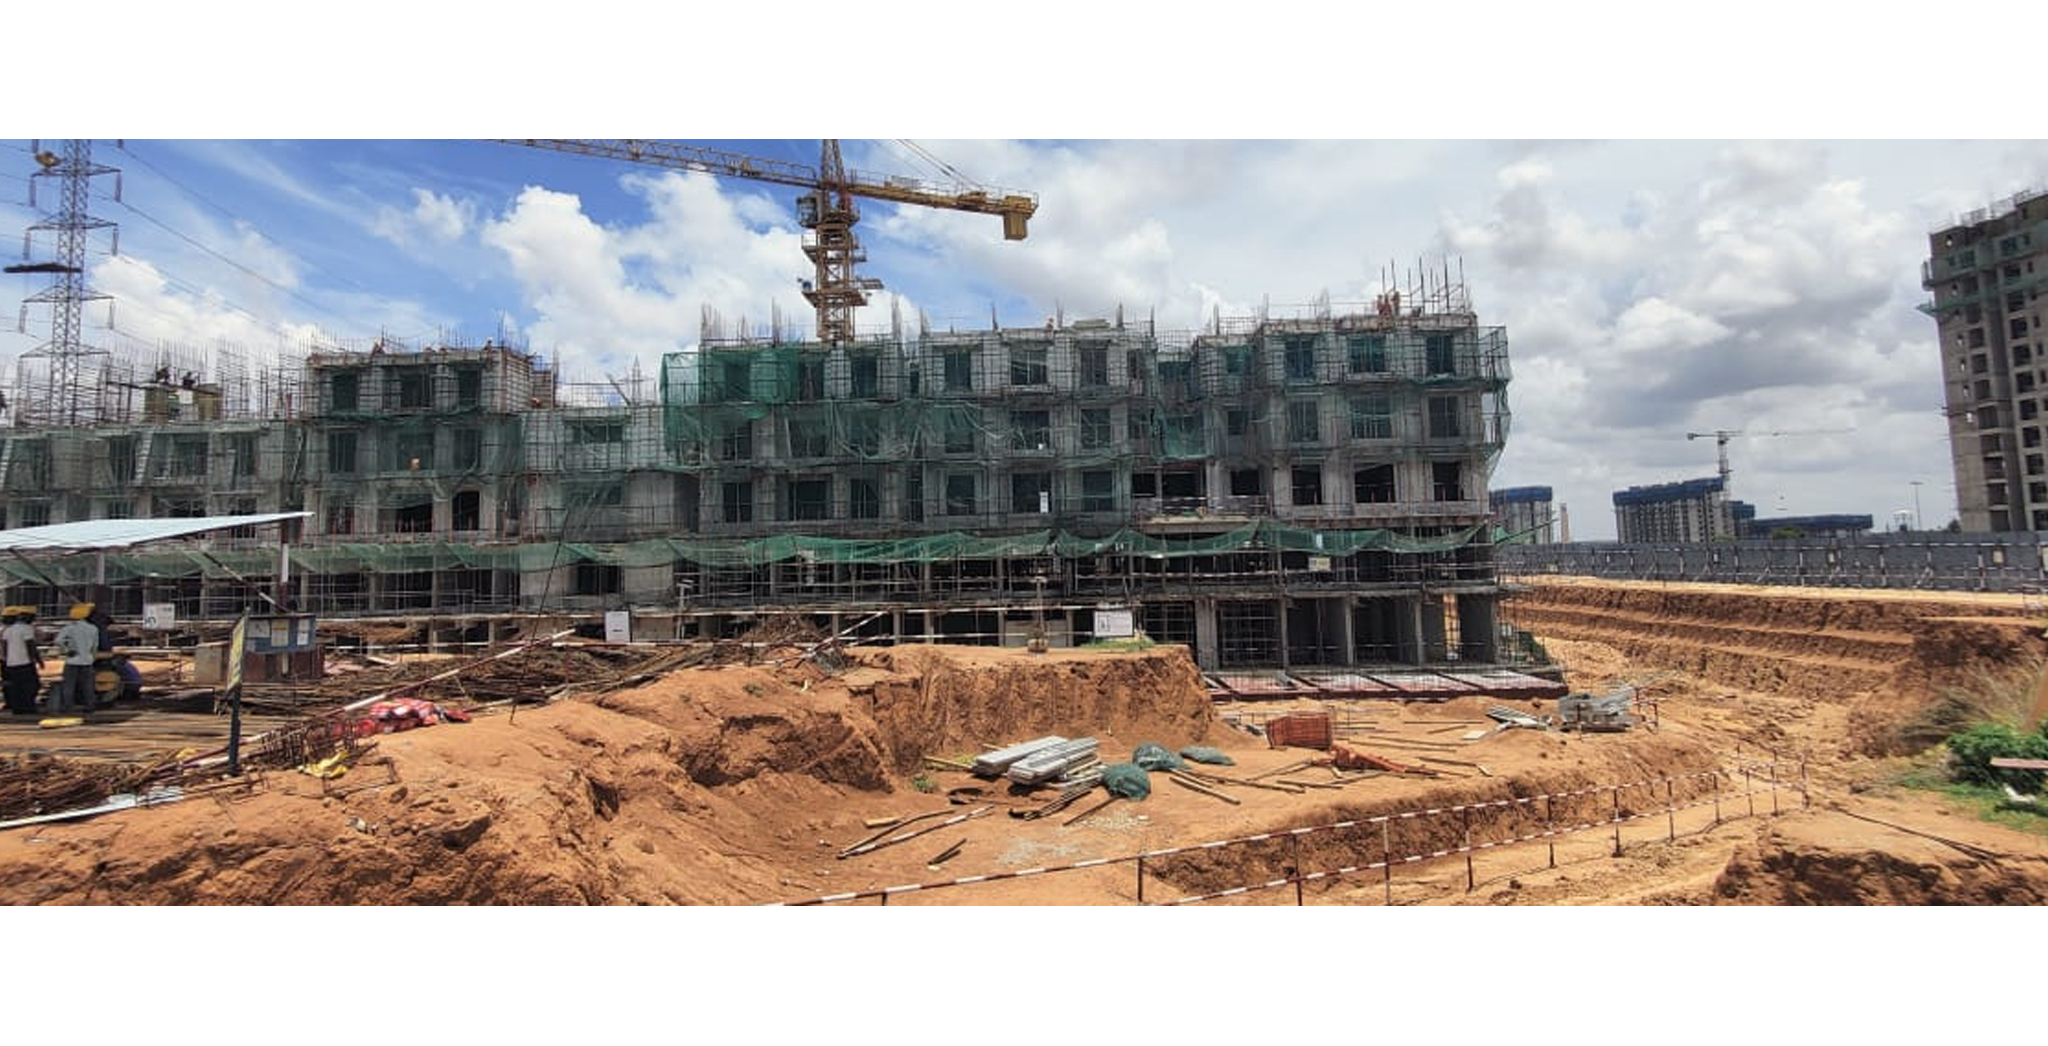 Aug 2021 - Jasper Block: Wing A - On commencement of third floor slab